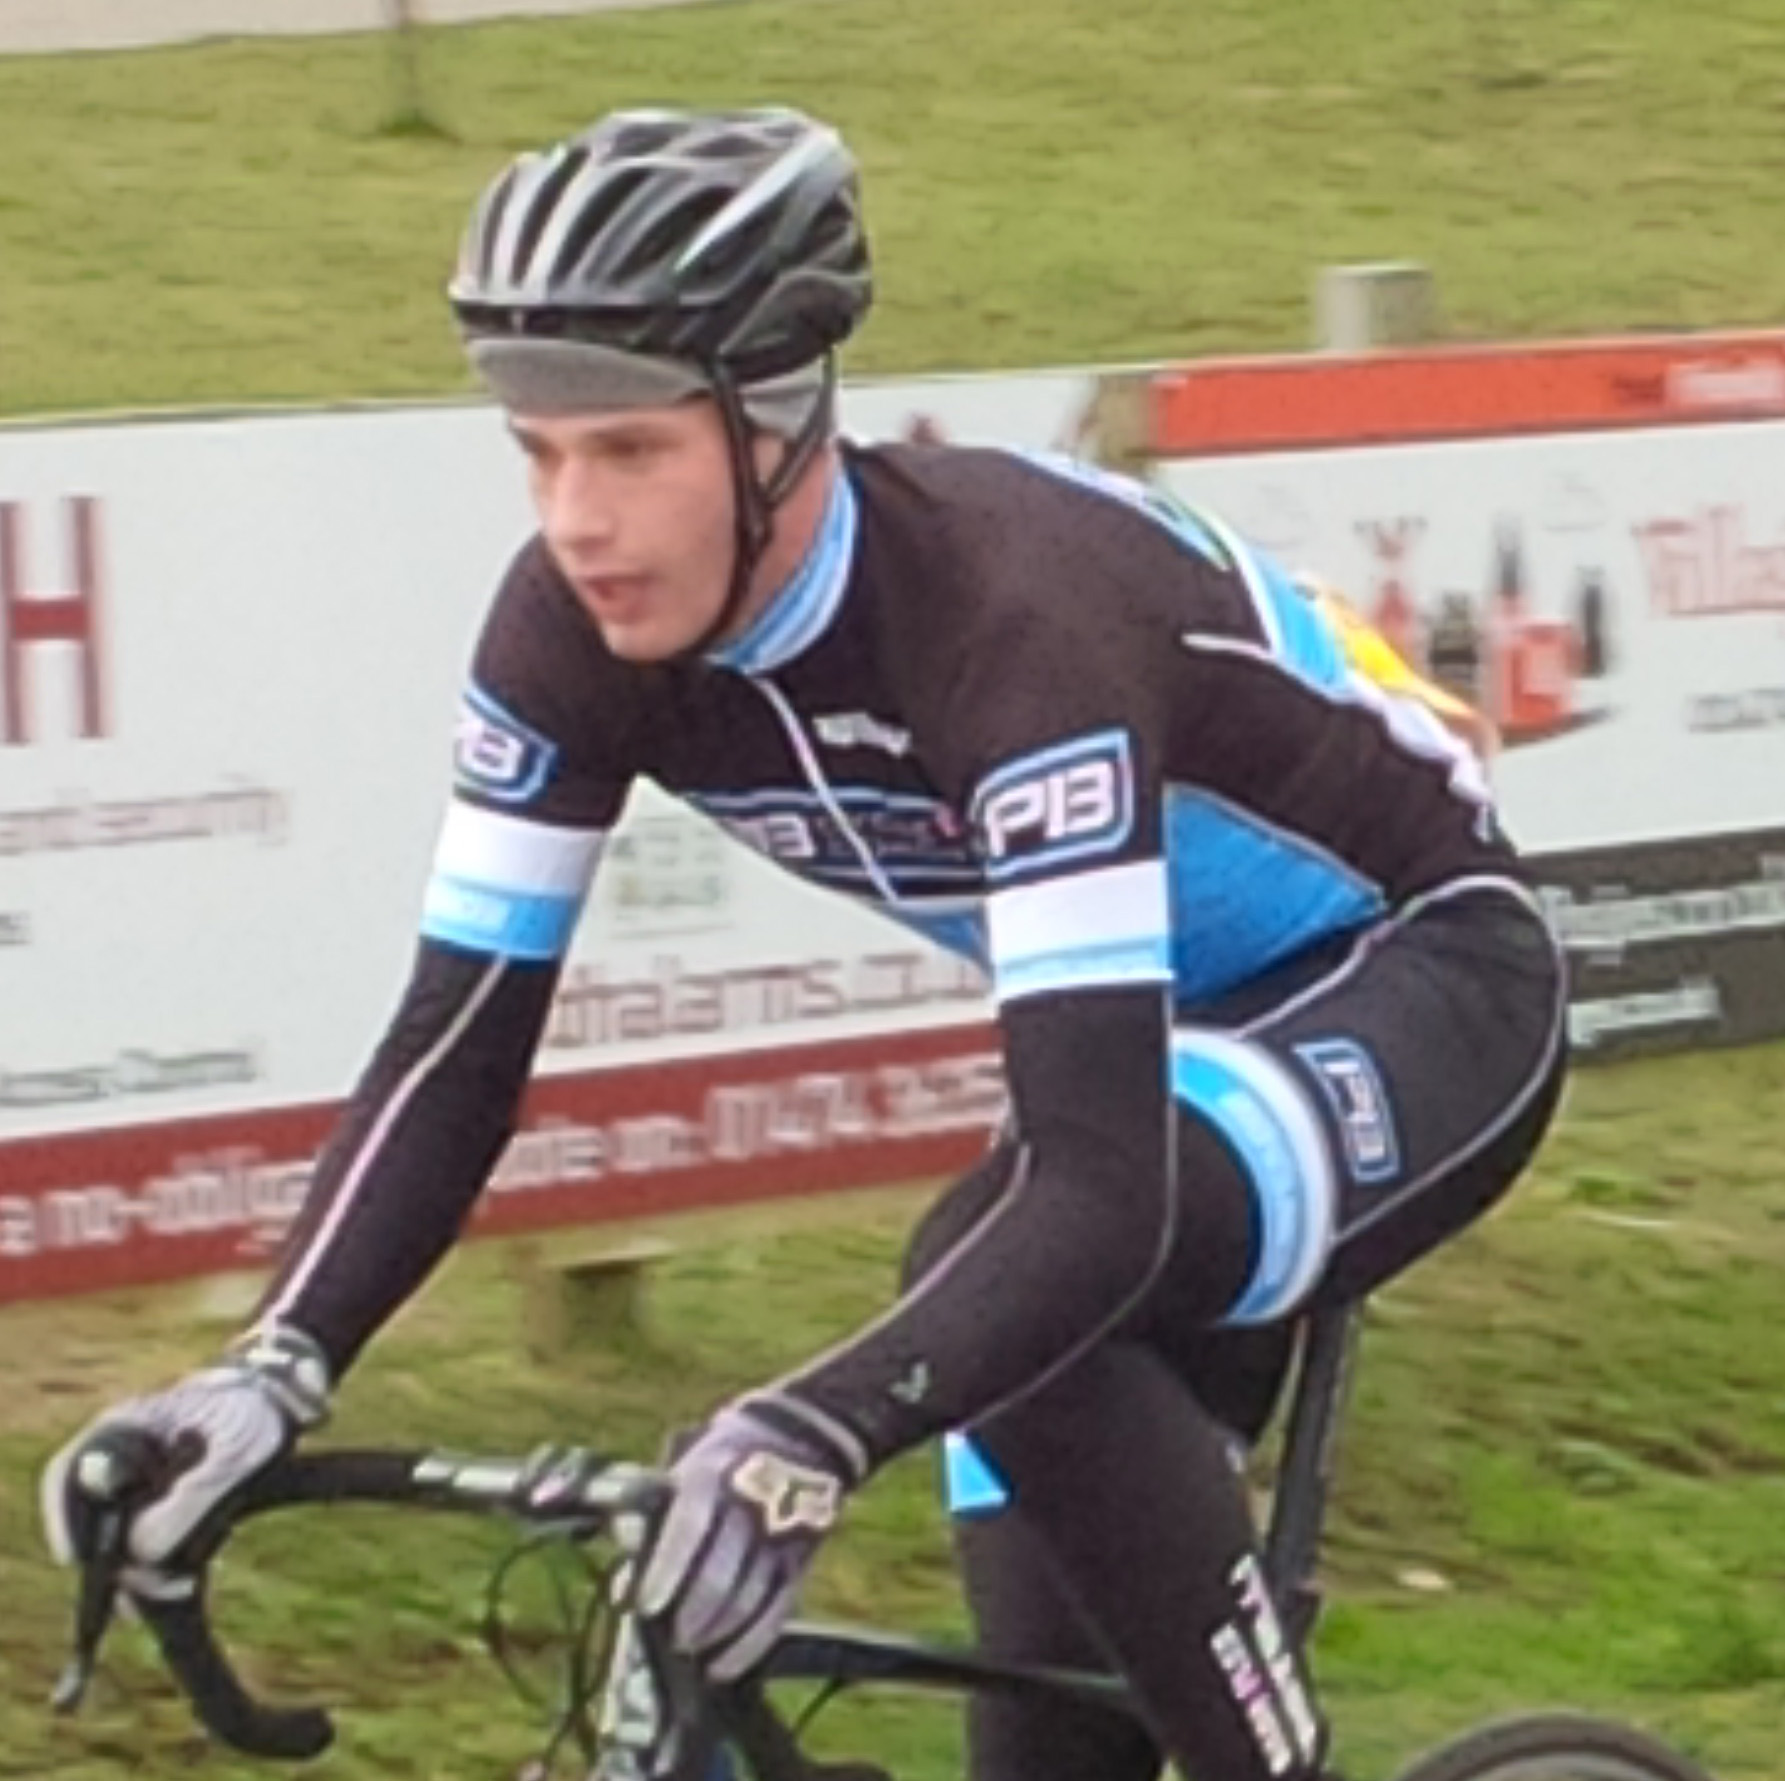 Cyclopark Masters 6th March 2015, Cyclopark 3rds then 4th 7th March 2015, Belgium Masters' Kermesse 8th March 2015